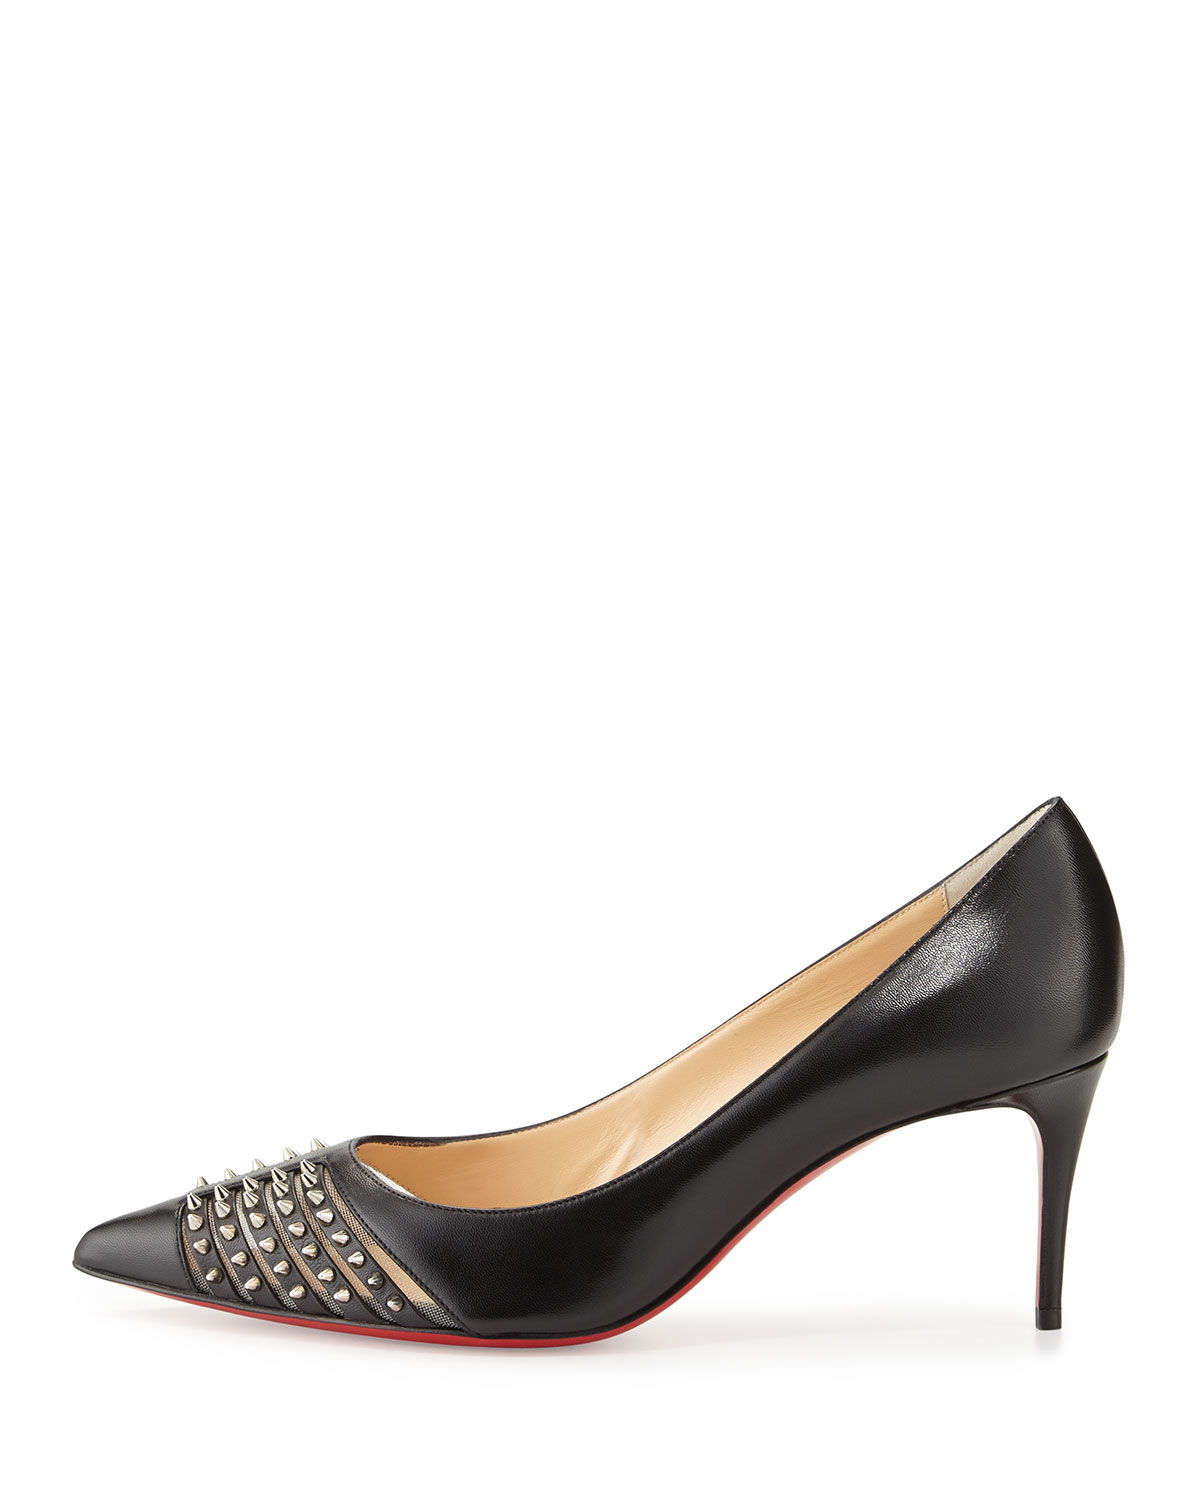 louis vuitton mens loafers - Christian louboutin Baretta Studded Low-heel Red Sole Pump in ...